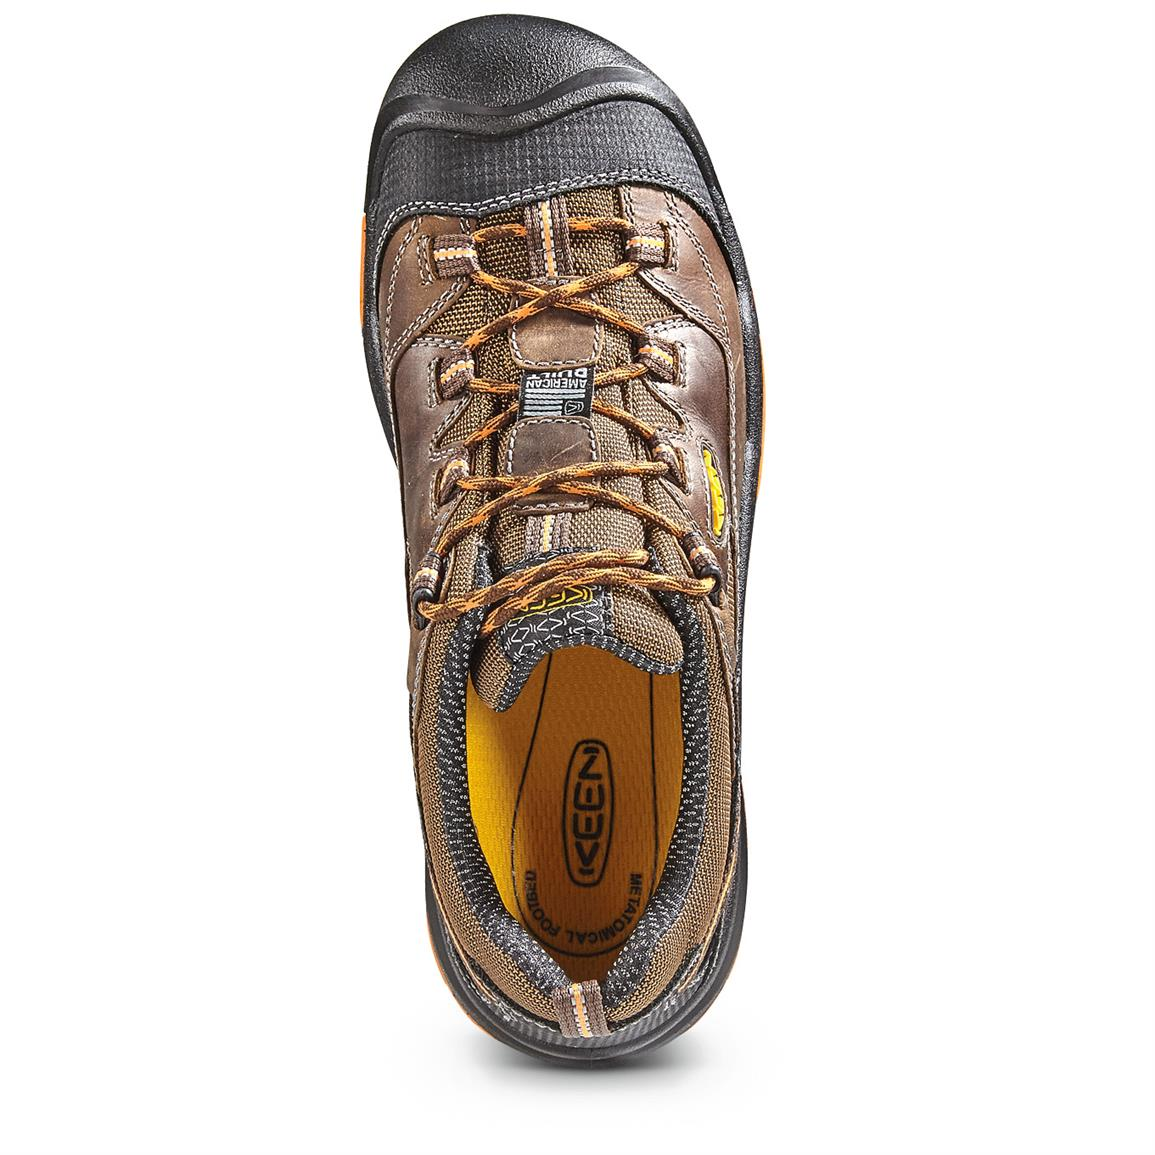 Removable, metatomical, dual-density EVA footbed provides support and cushioning